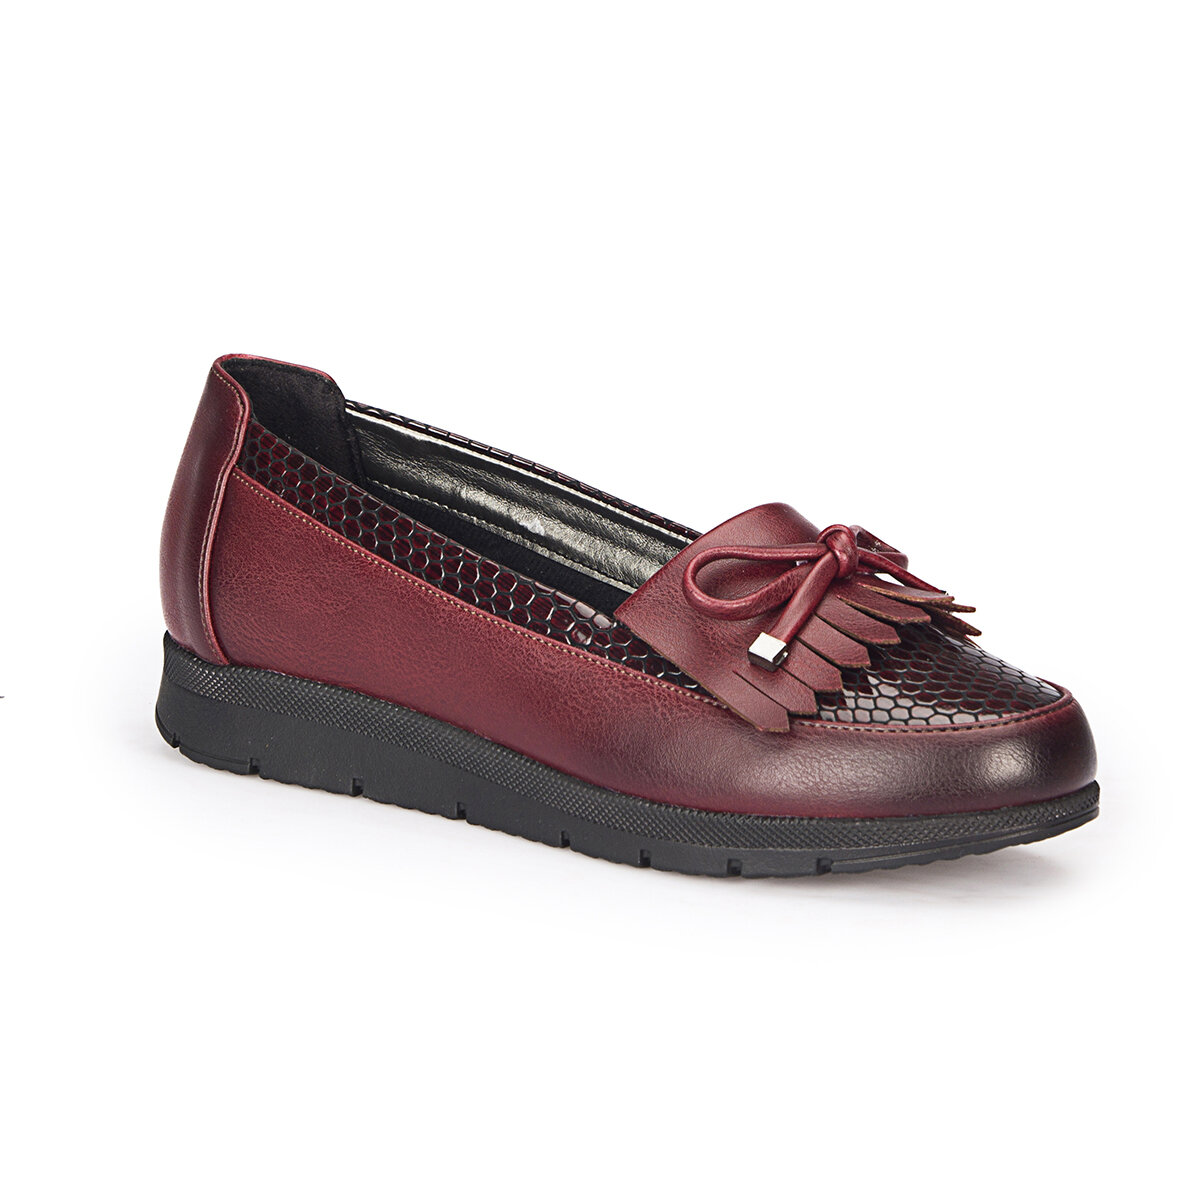 FLO 72. 158010.Z Burgundy Women Loafer Shoes Polaris